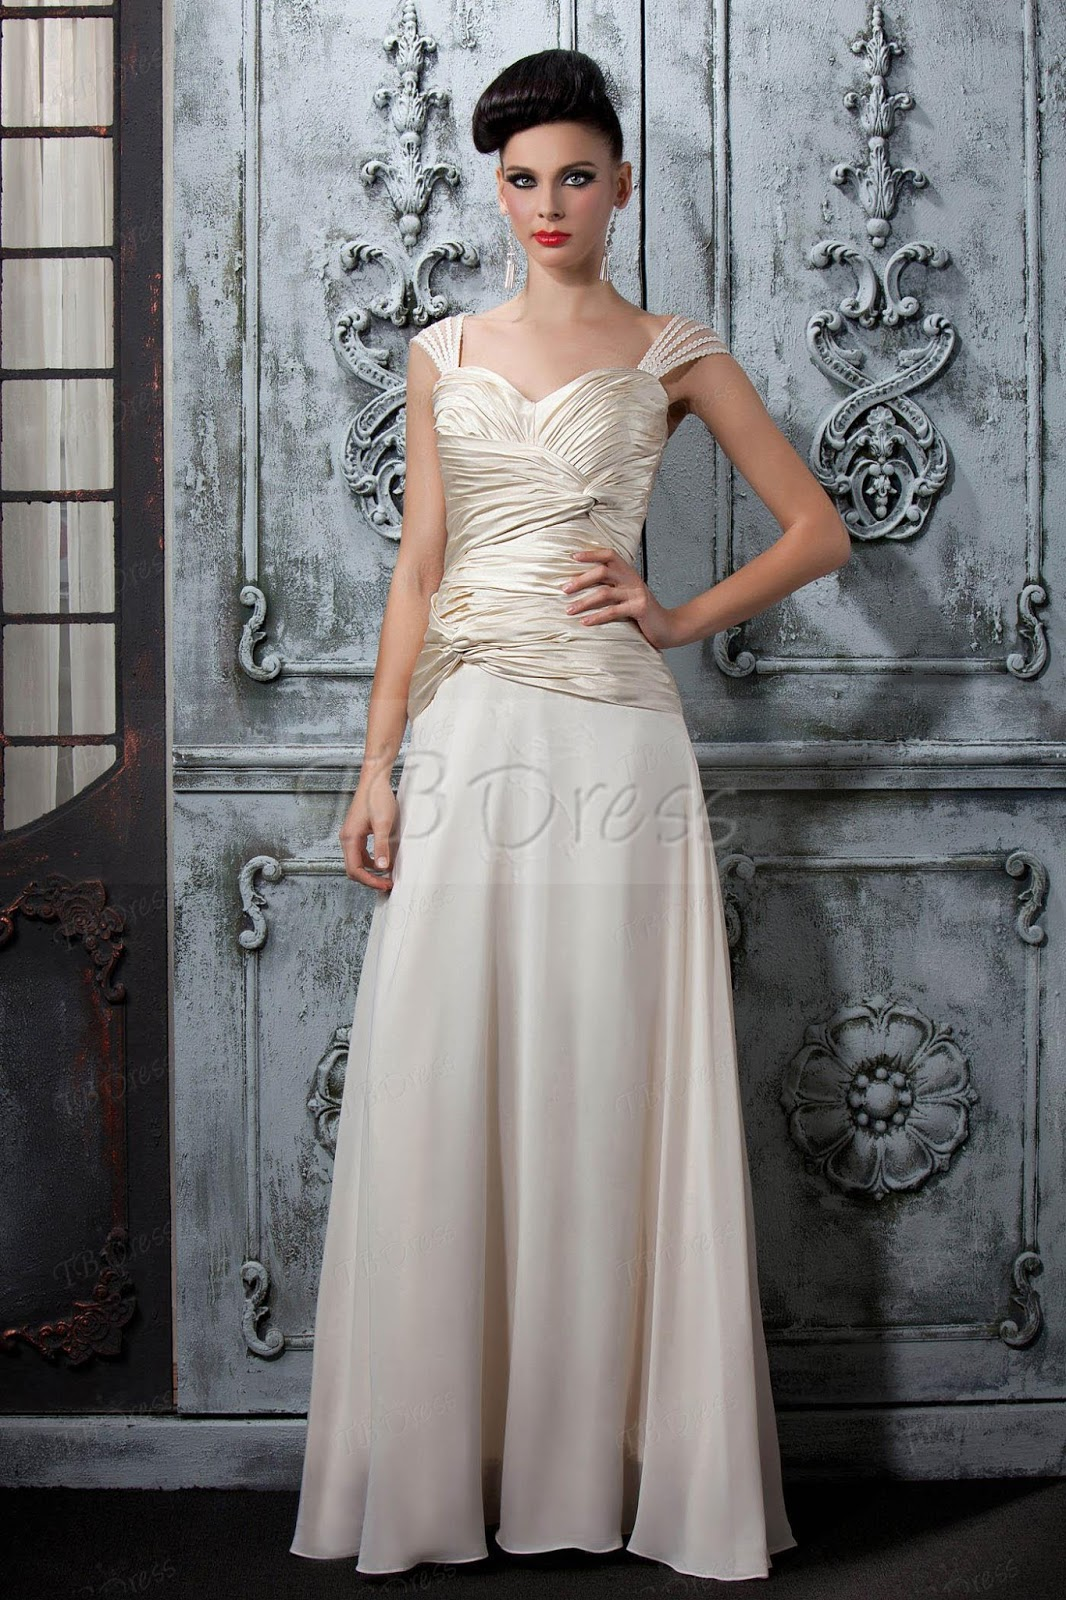 http://www.tbdress.com/Cheap-Pageant-Dresses-5589/